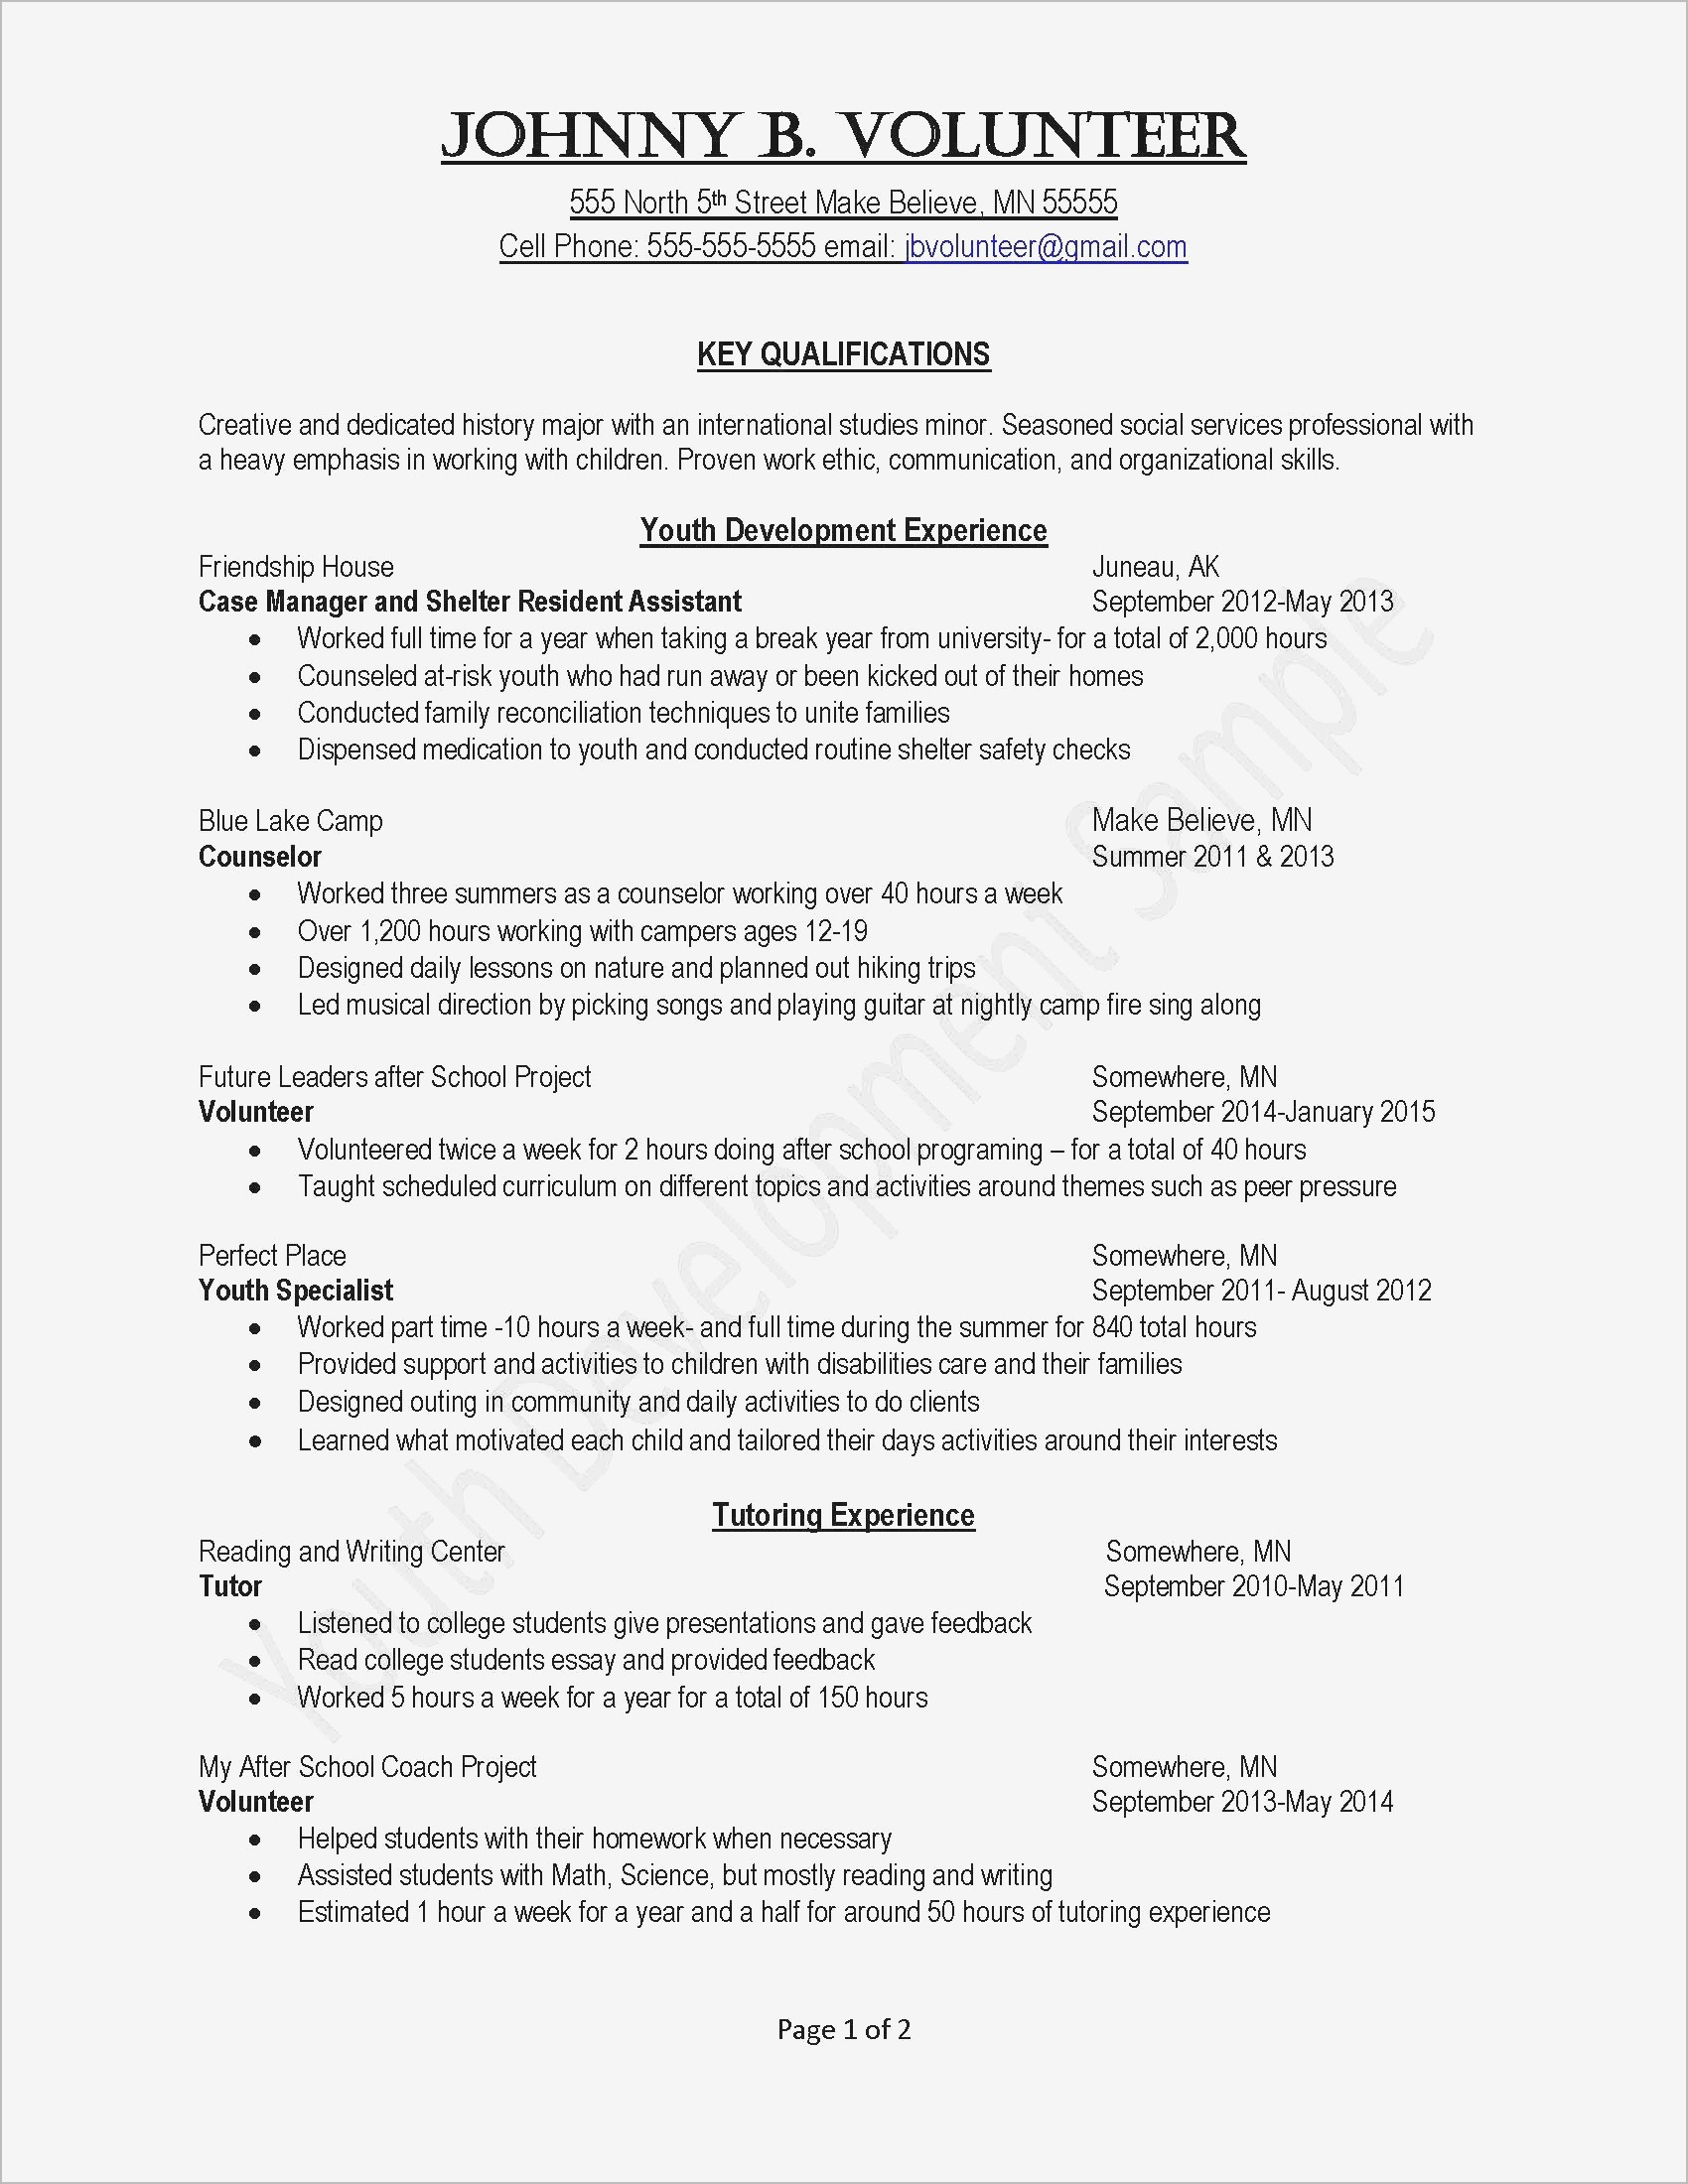 business cover letter template word Collection-Resume Templates Word 2013 Cover Letter Template Modern Copy Od Consultant Cover Letter Web 6-f